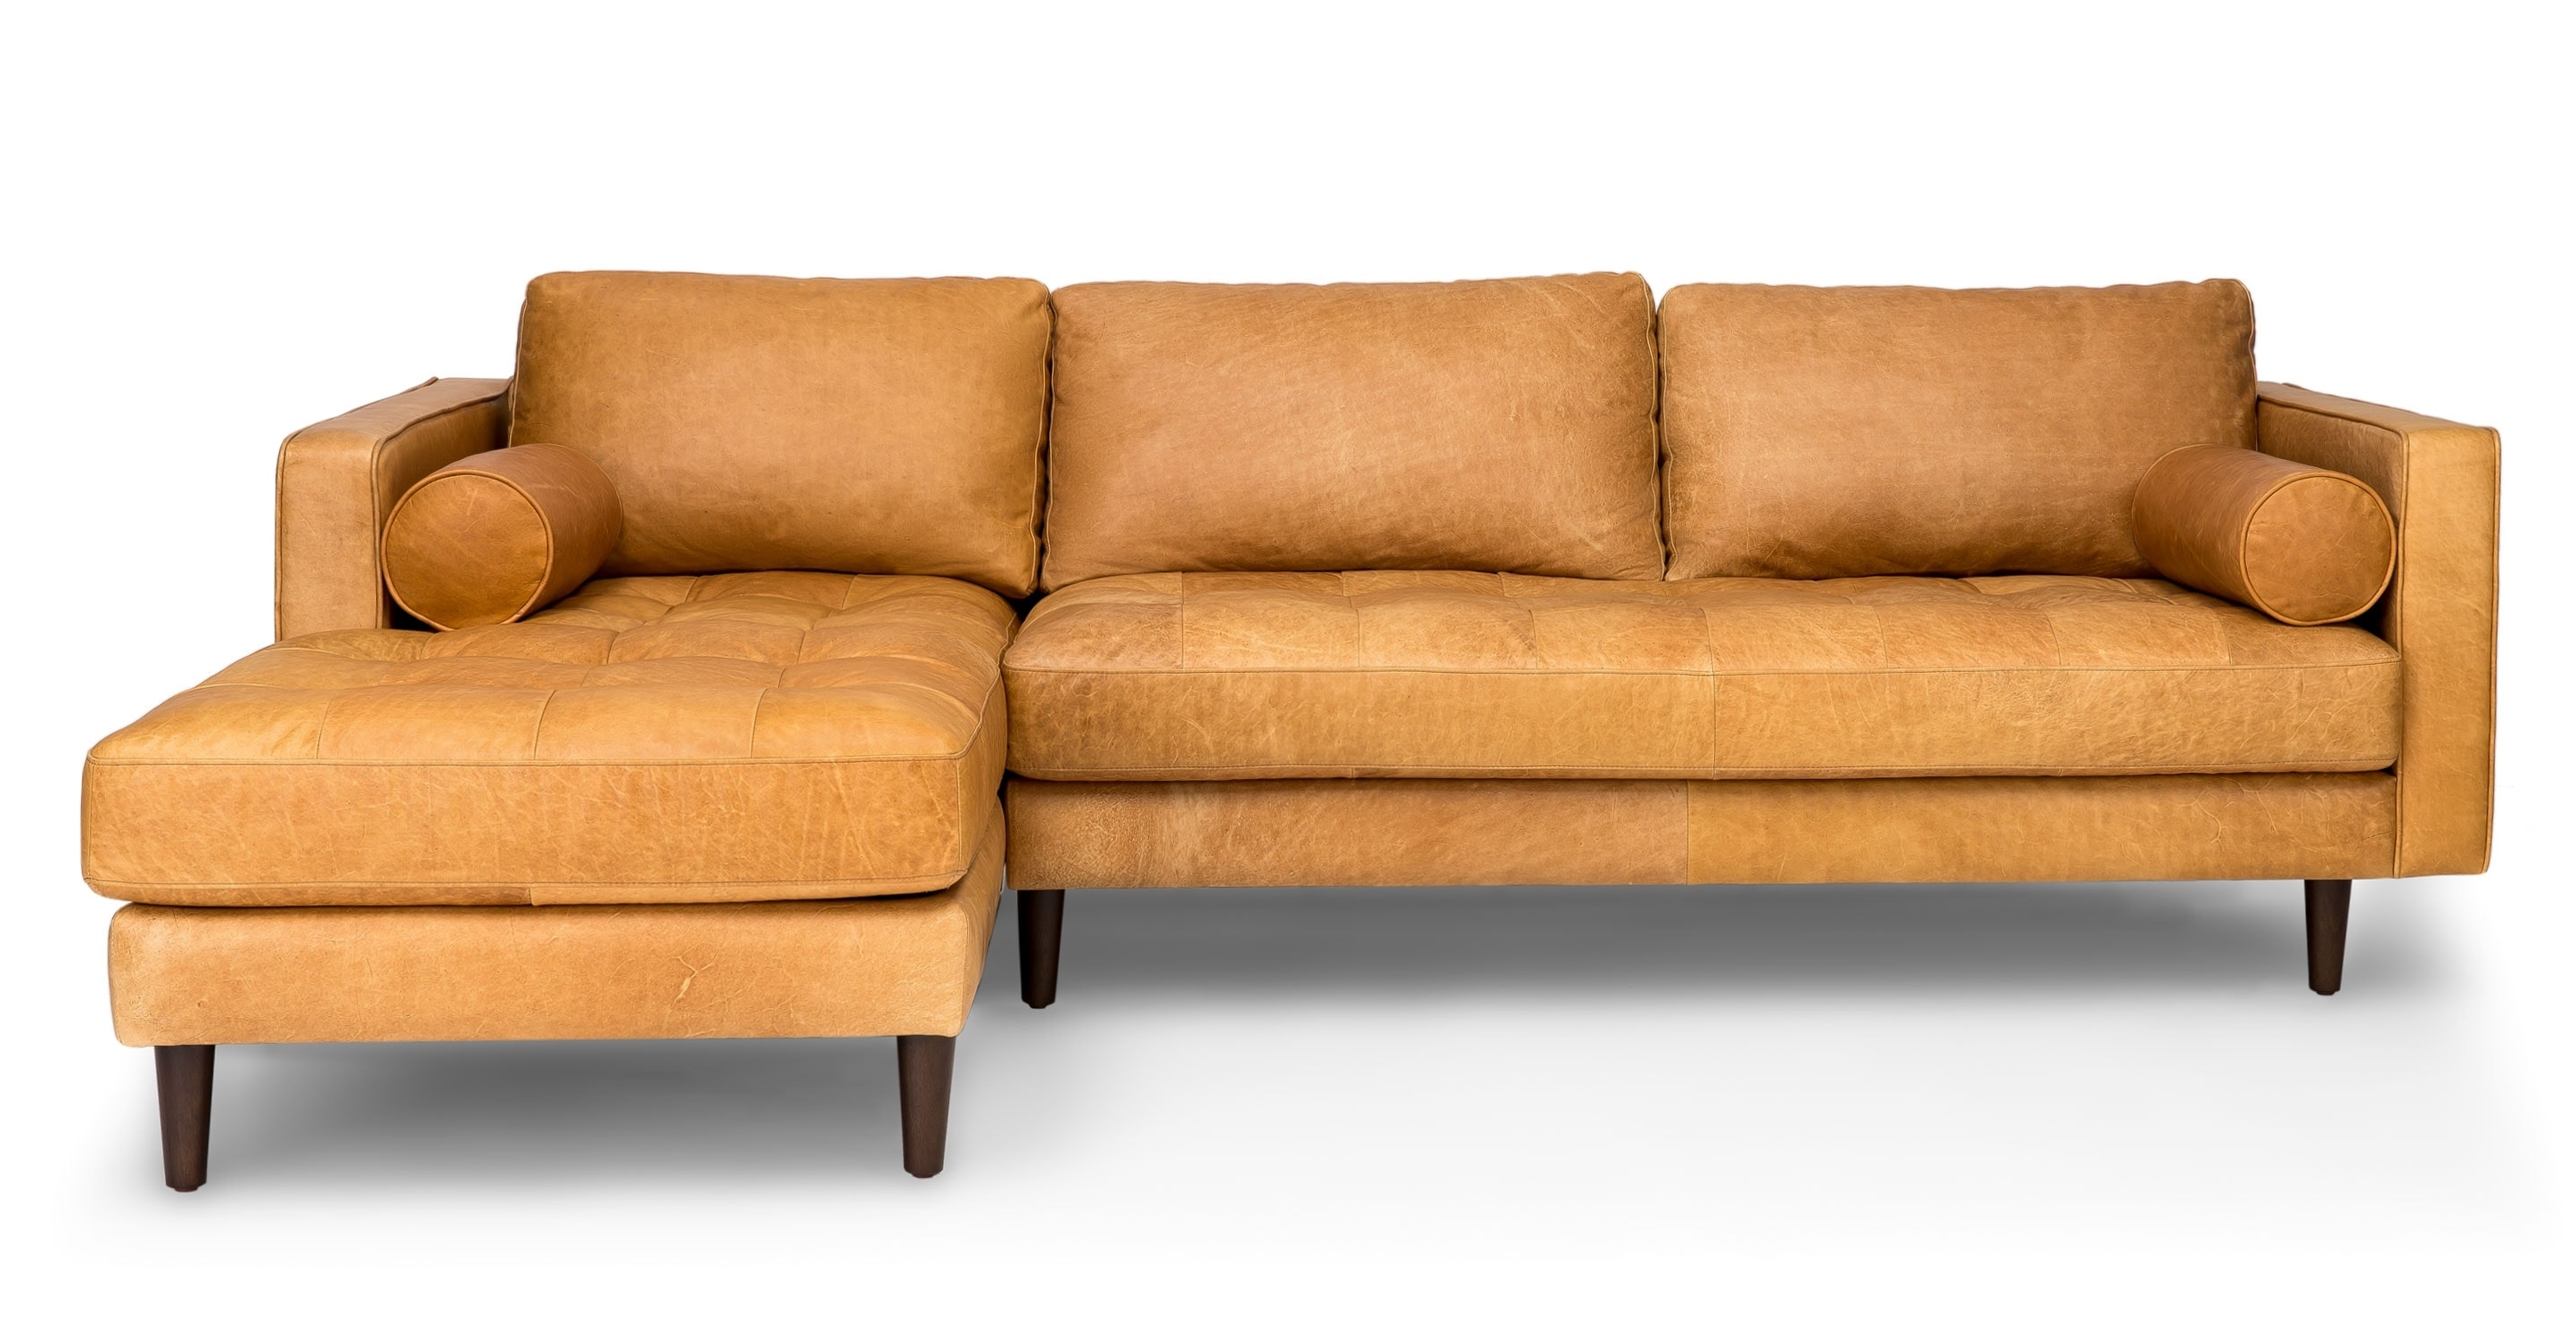 Favorite Nice Tan Leather Sofa For Home Decor Artistic Light Brown Leather Regarding Light Tan Leather Sofas (View 10 of 20)